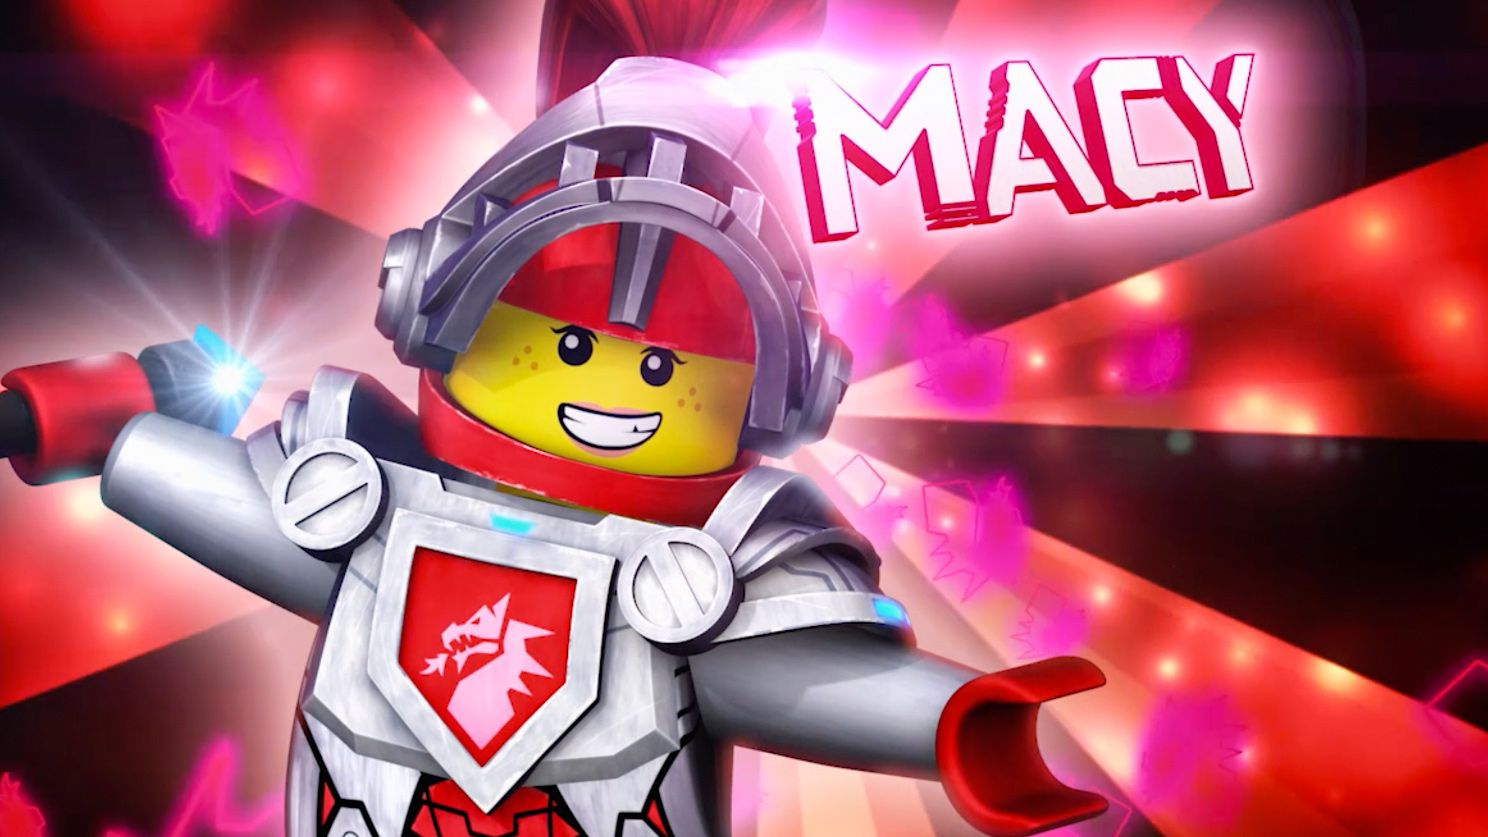 macy characters nexo knights cartoons pinterest jungs and ideen. Black Bedroom Furniture Sets. Home Design Ideas